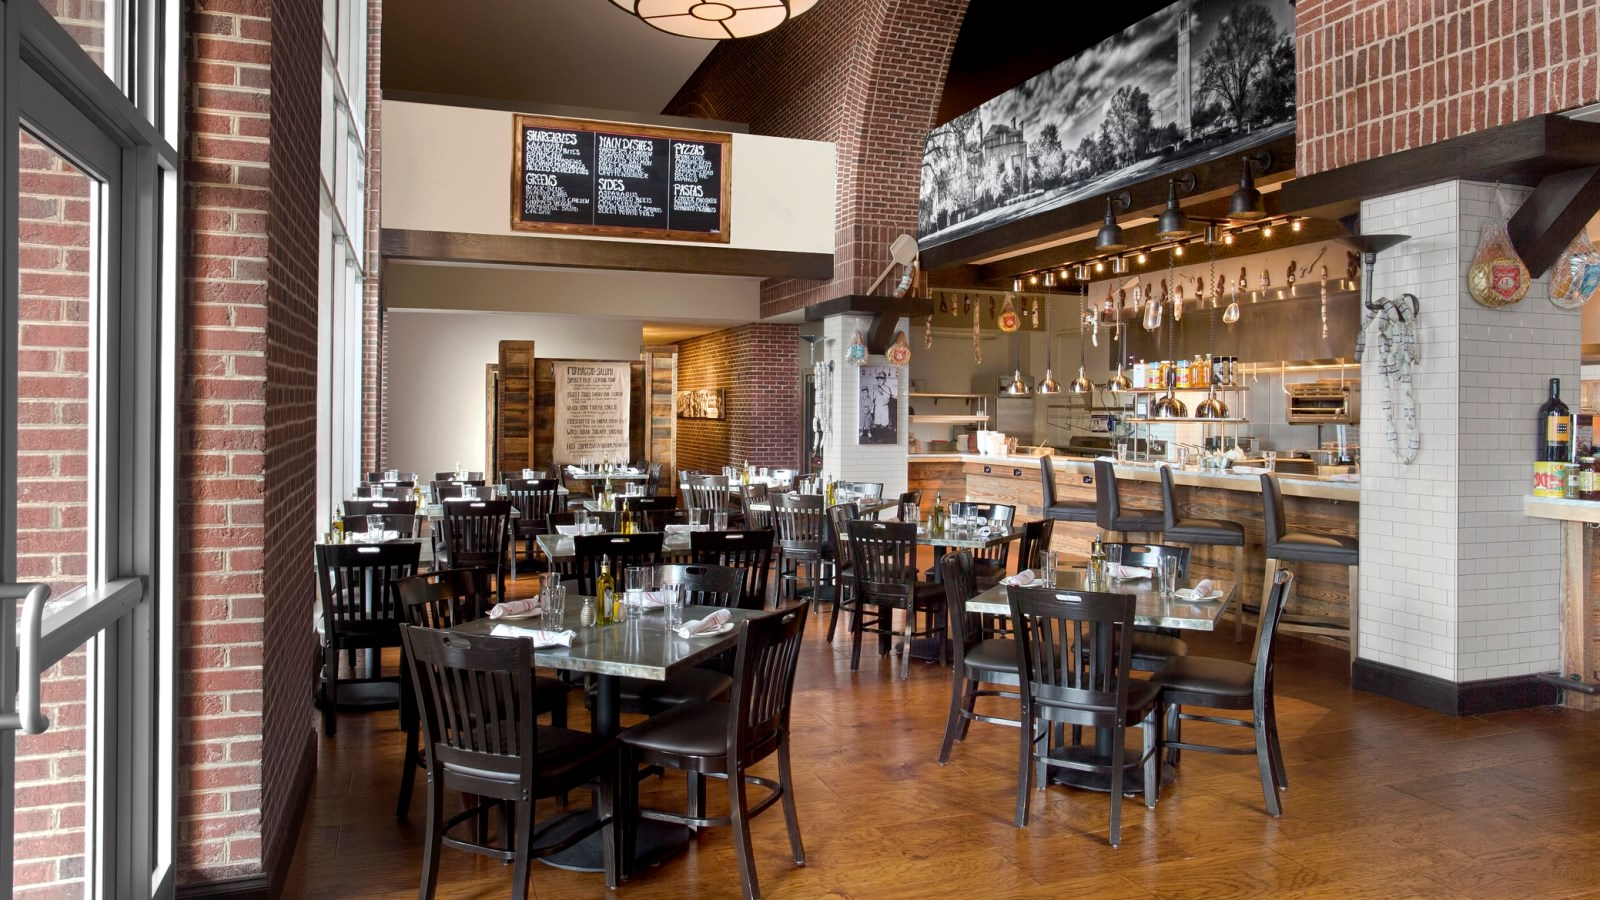 Sheraton Raleigh Hotel - Jimmy V's Osteria & Bar